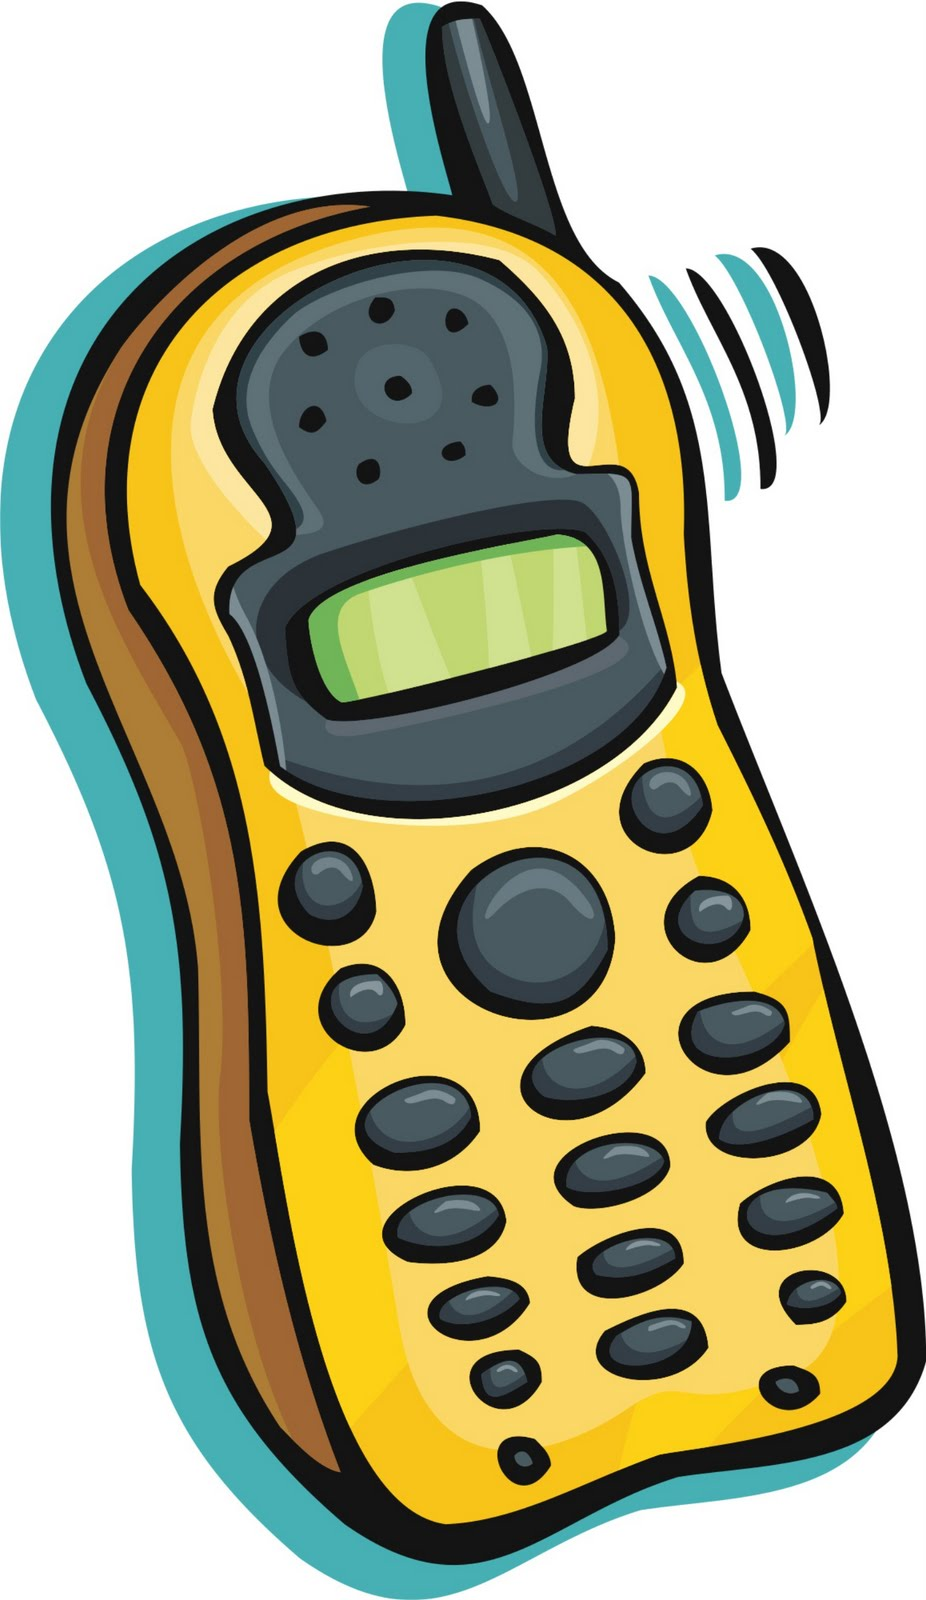 phone telephone clipart call clip phones cliparts cell icon clipartpanda 1564 clipartix library voicemail handphone brochure beyond admissions perspective elementary